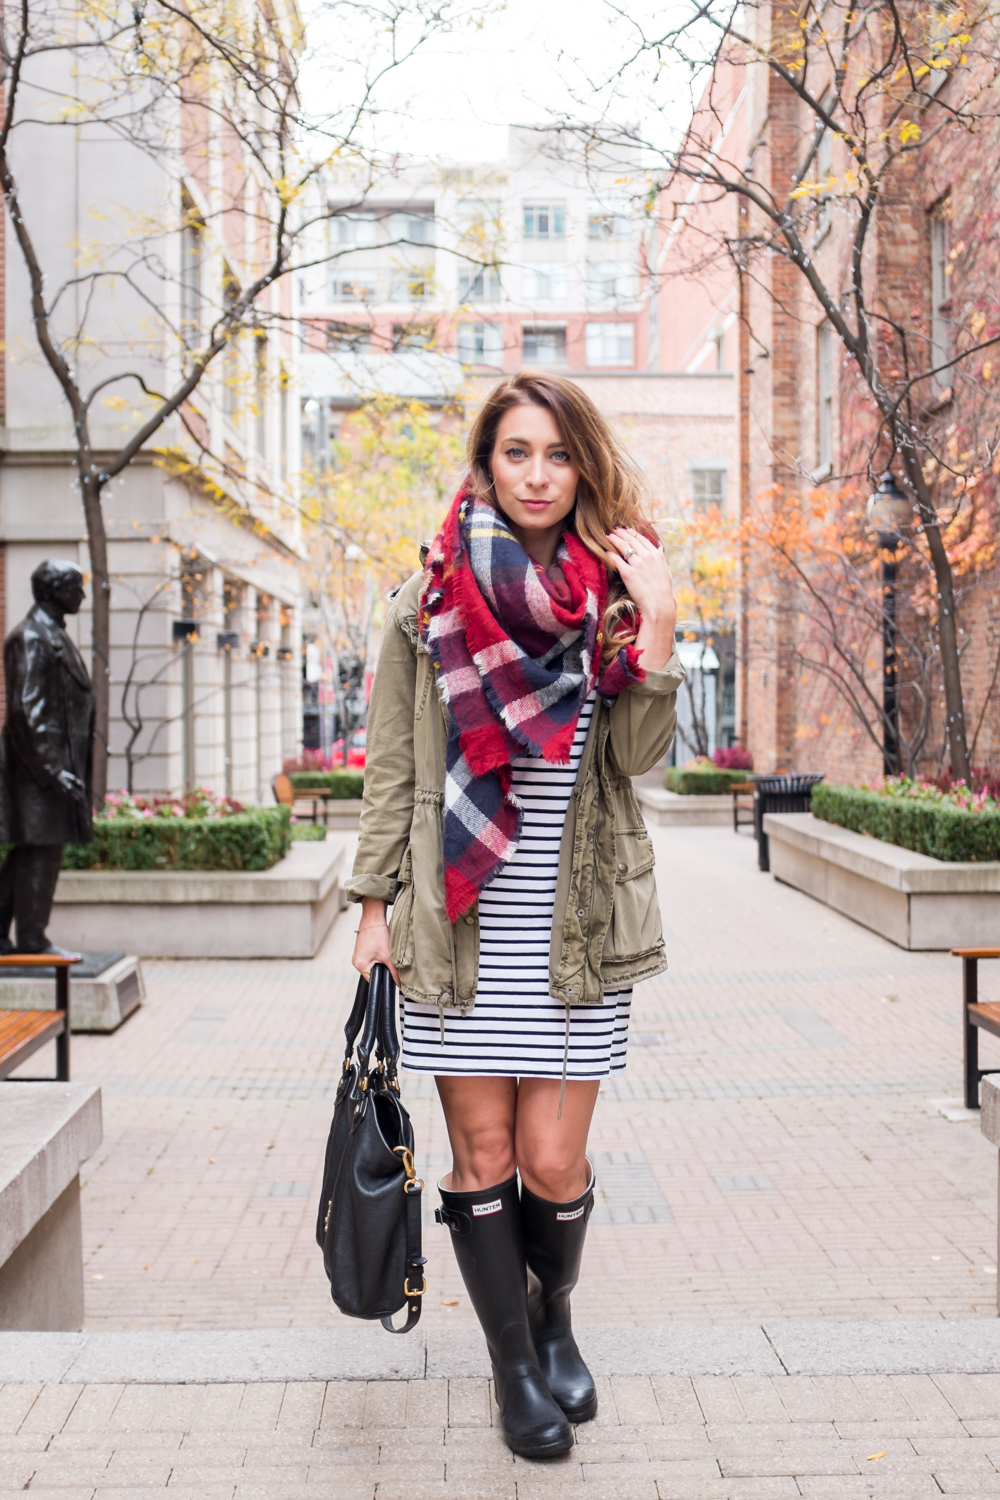 OOTD - Stripes + Plaid and Why I Hate The Term Basic